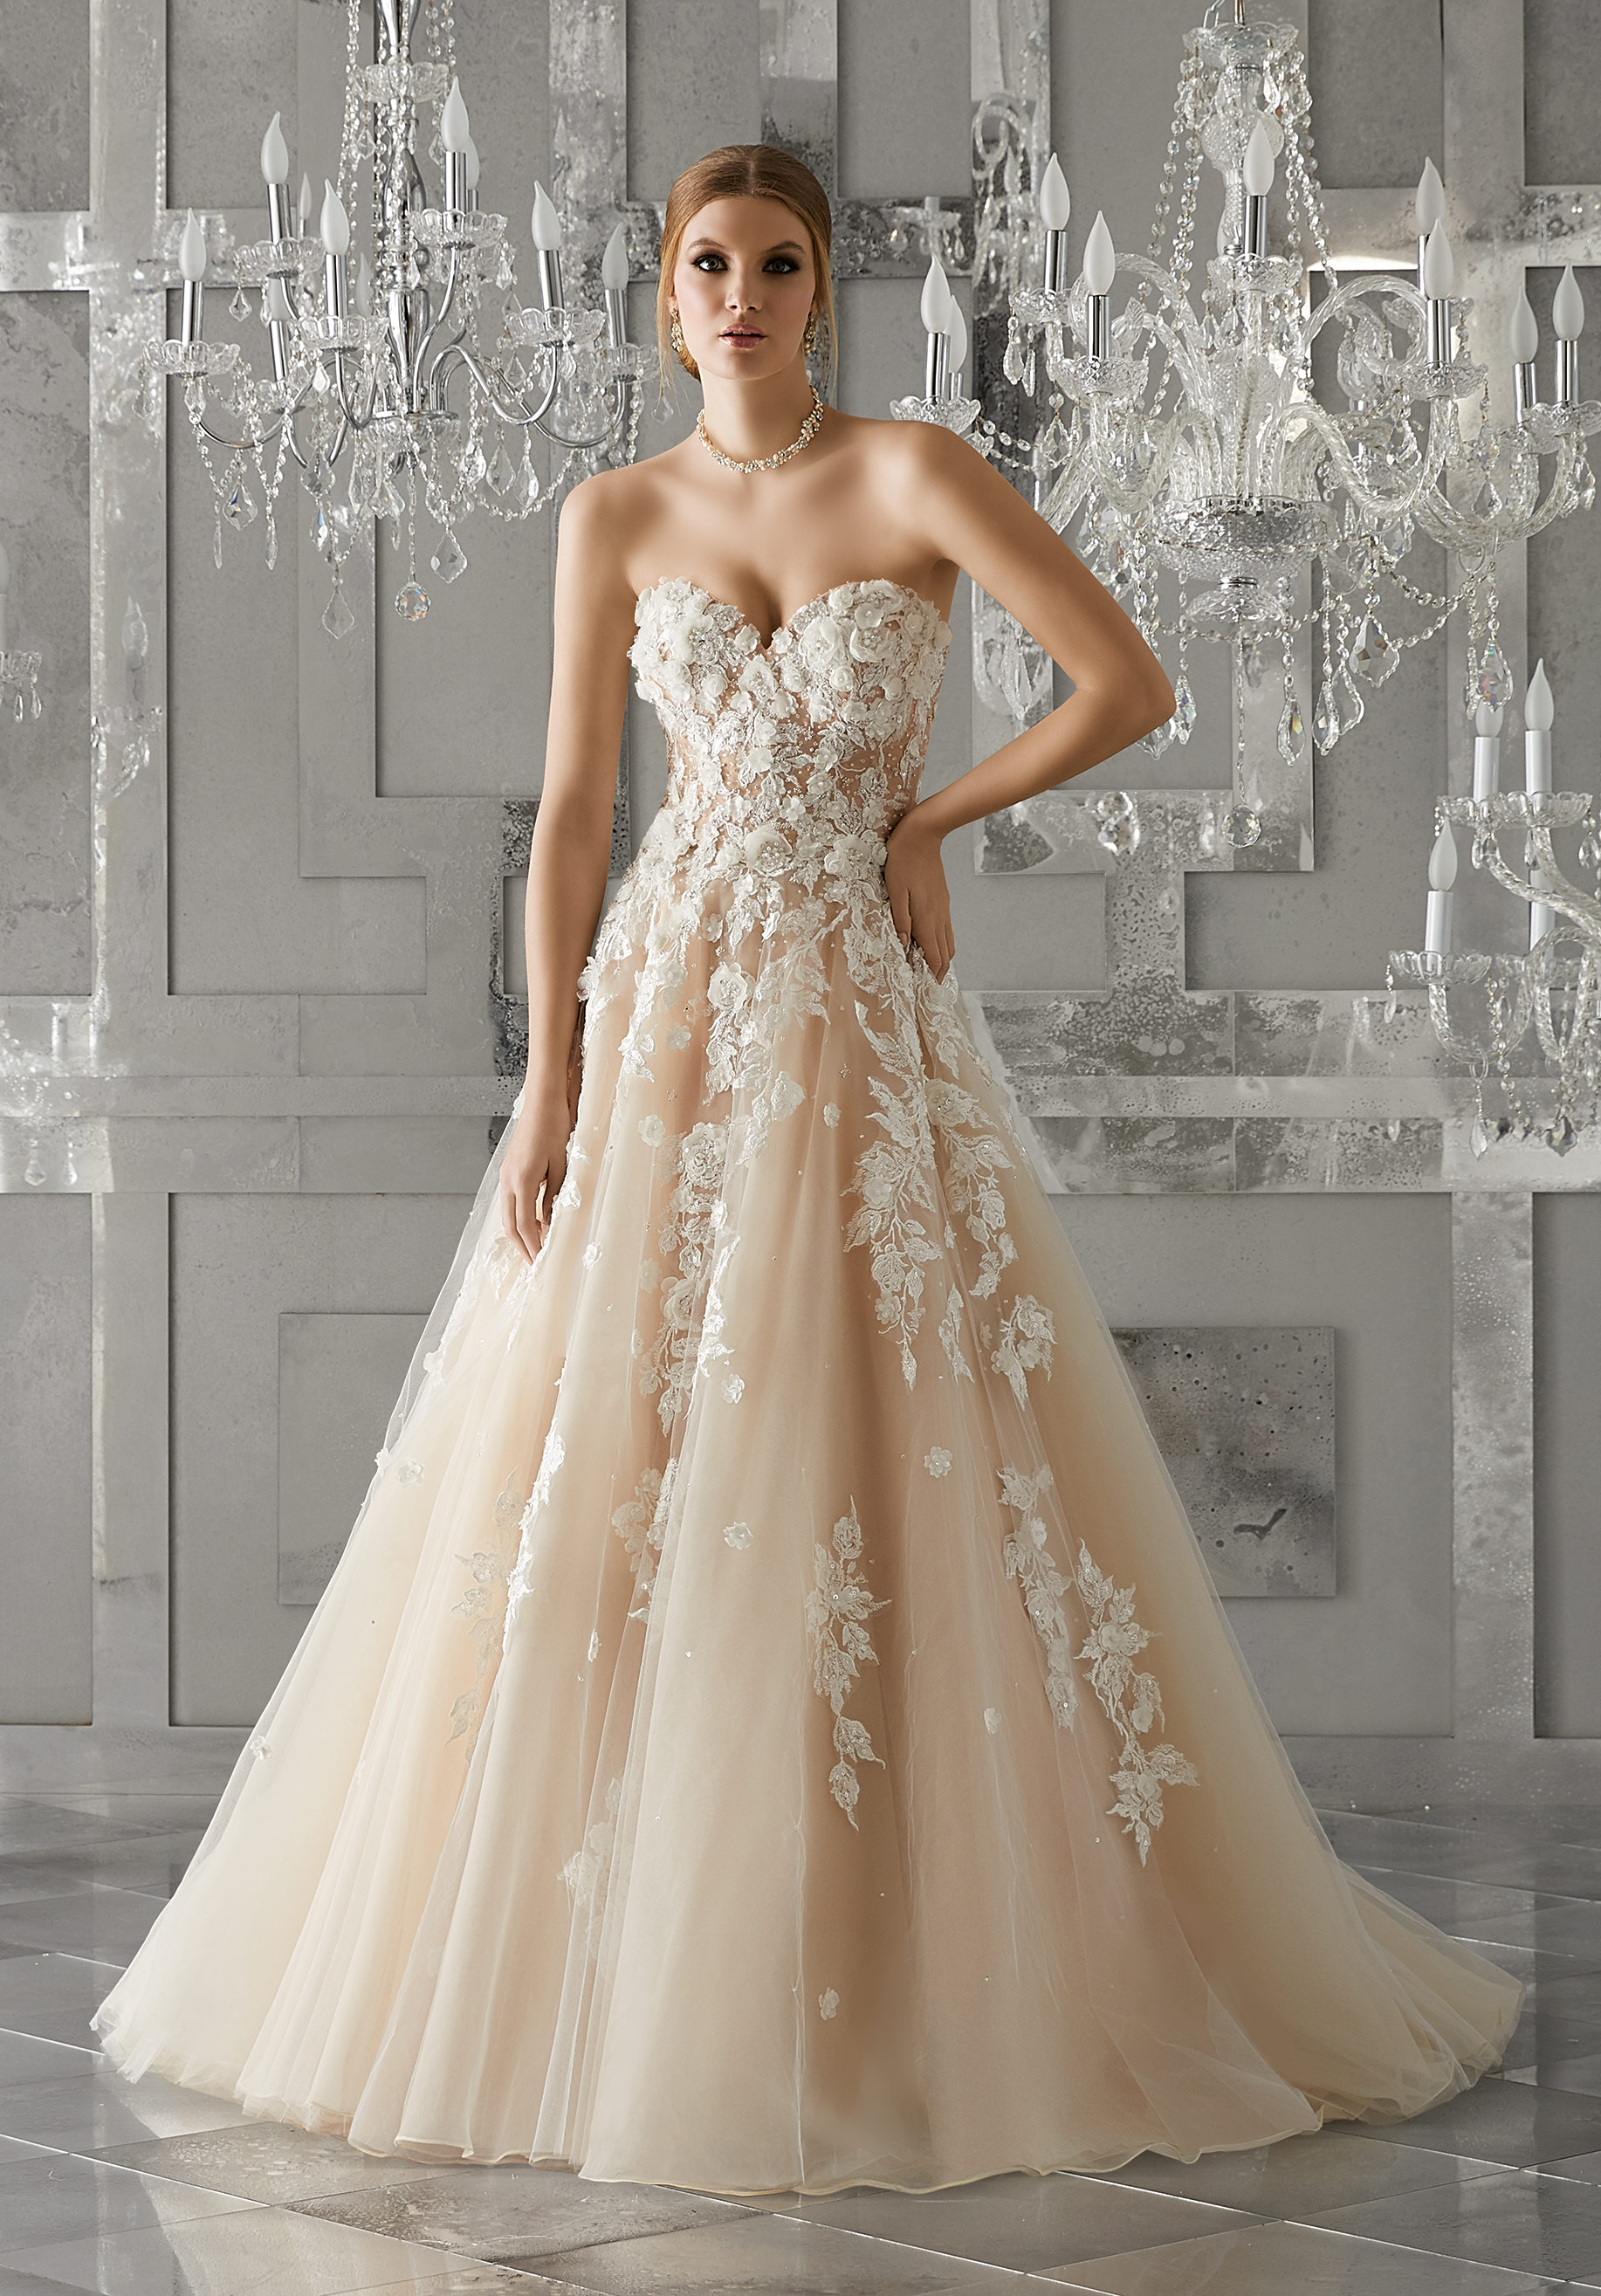 Review of meadow morilee wedding dress the best wedding dresses morilee meadow wedding dress junglespirit Gallery